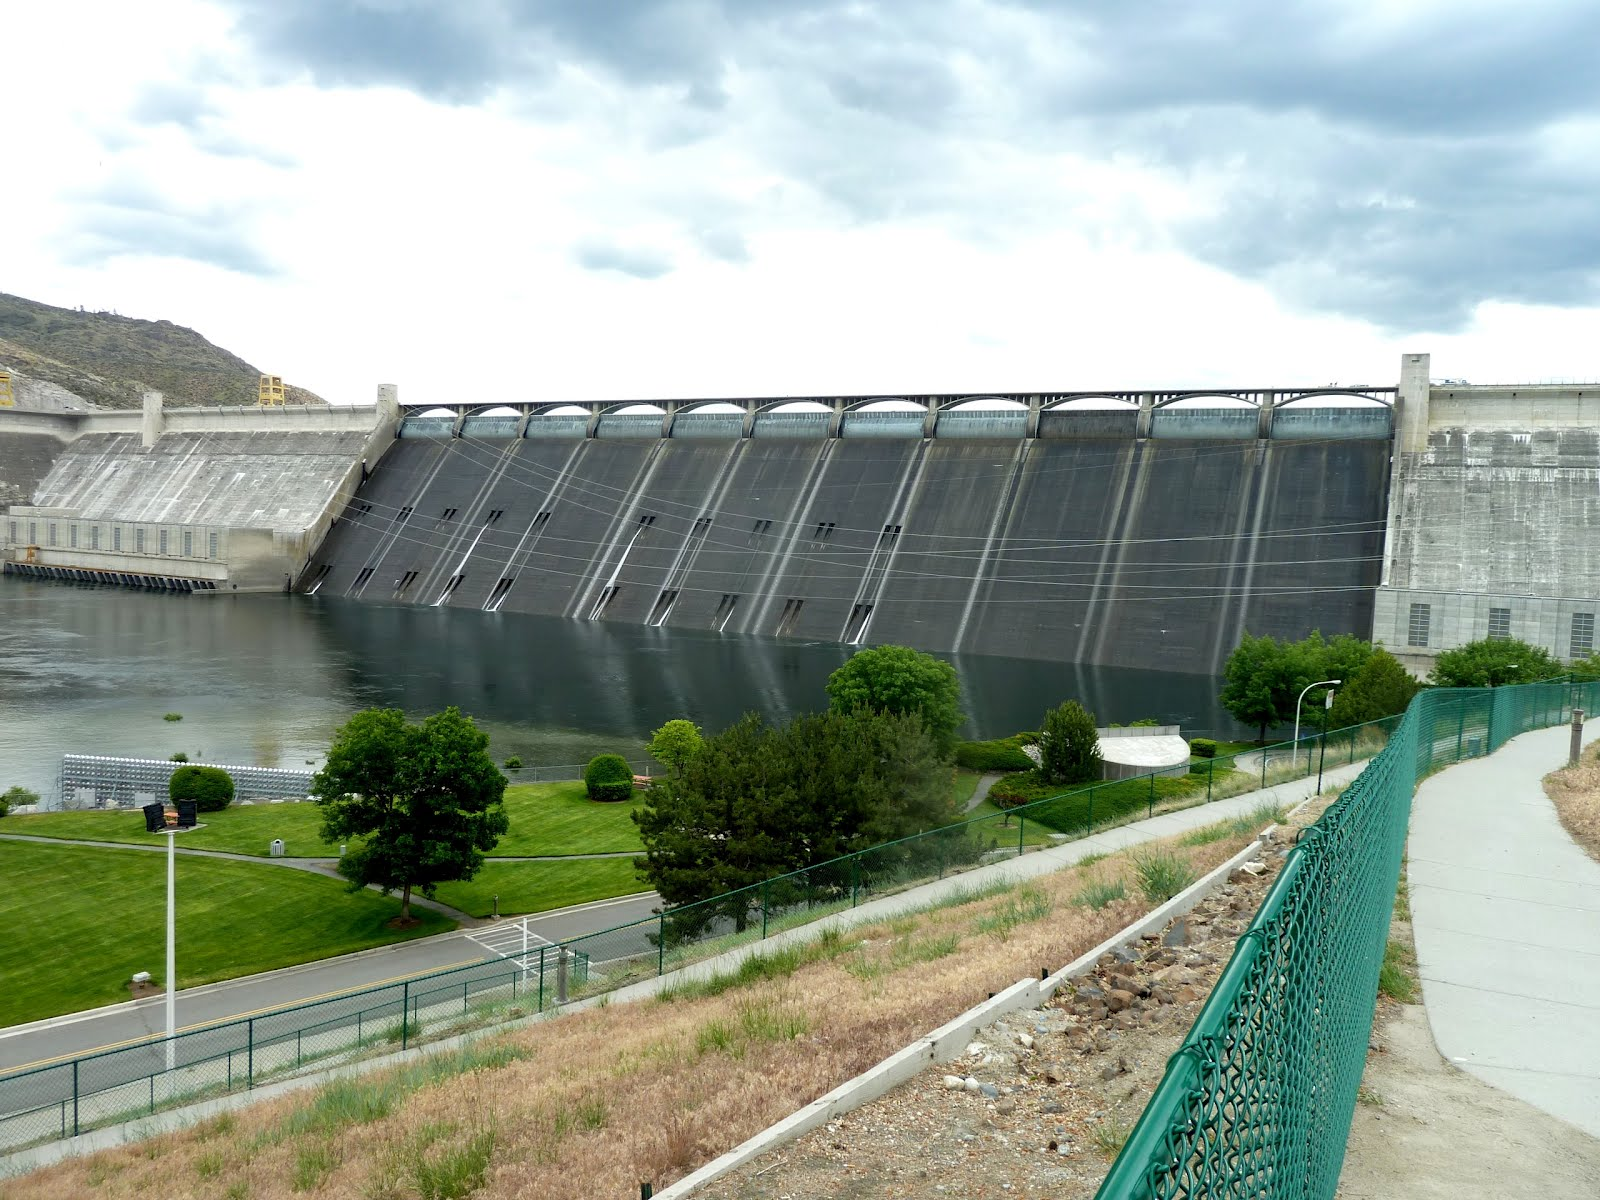 coulee dam senior singles Just wondering how many motorcycle riders are out there who would be interested in a july 4th/09 weekend ride south of the border coulee dam, fireworks,2 laser light shows,horseback riding satu.